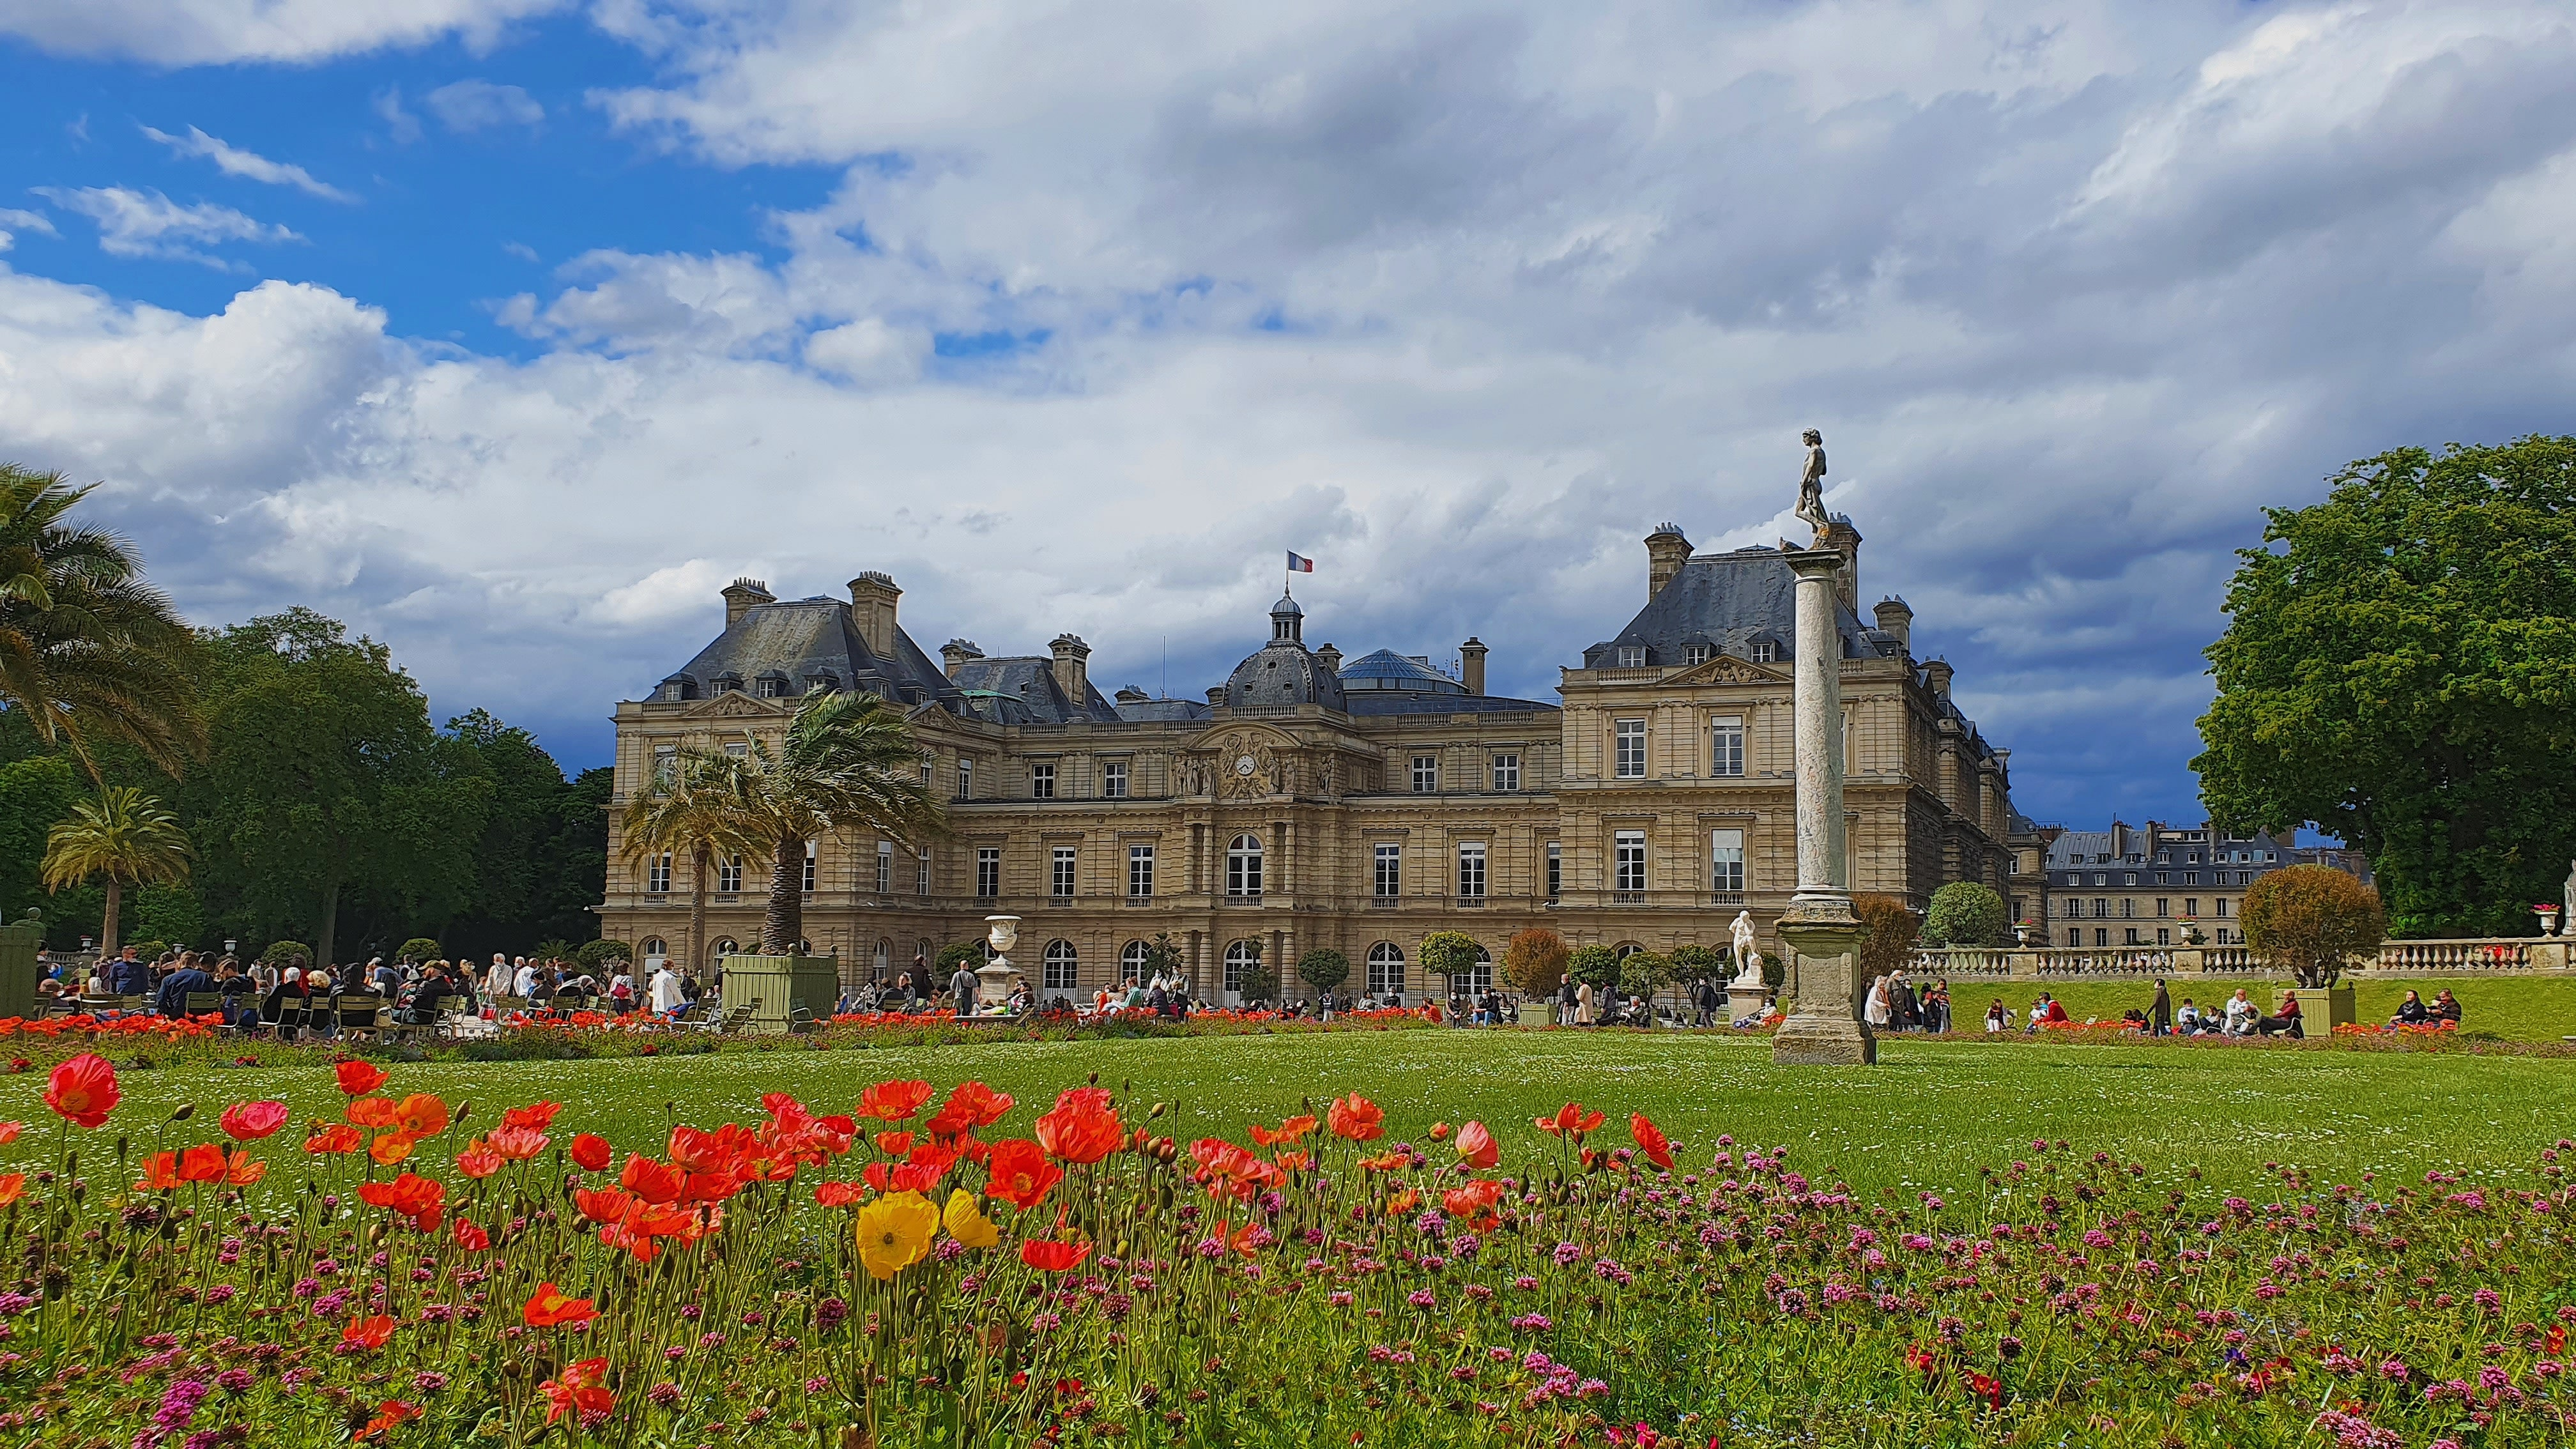 Luxembourg Palace image from Unsplash by Marie Evano